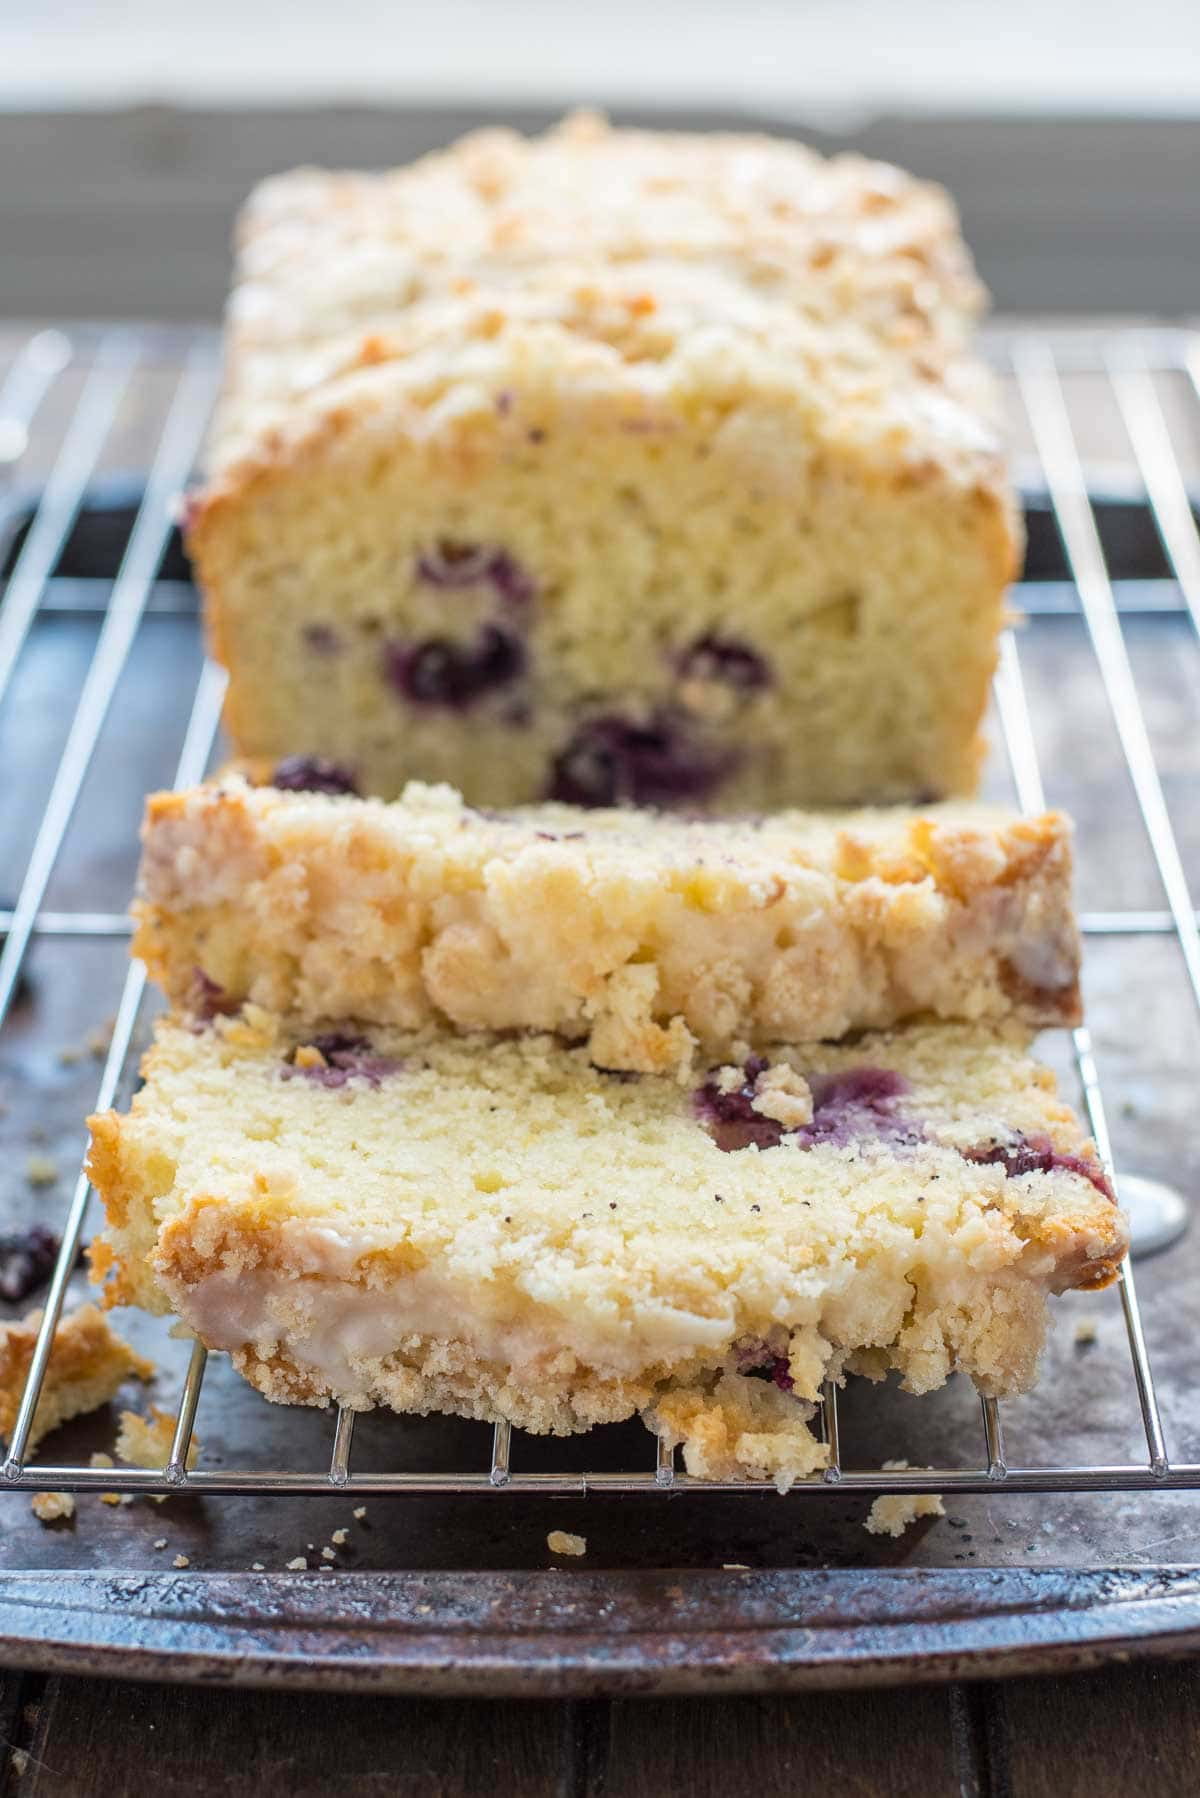 This Lemon Blueberry Crumb Bread is perfect for a spring breakfast, shower, or brunch!